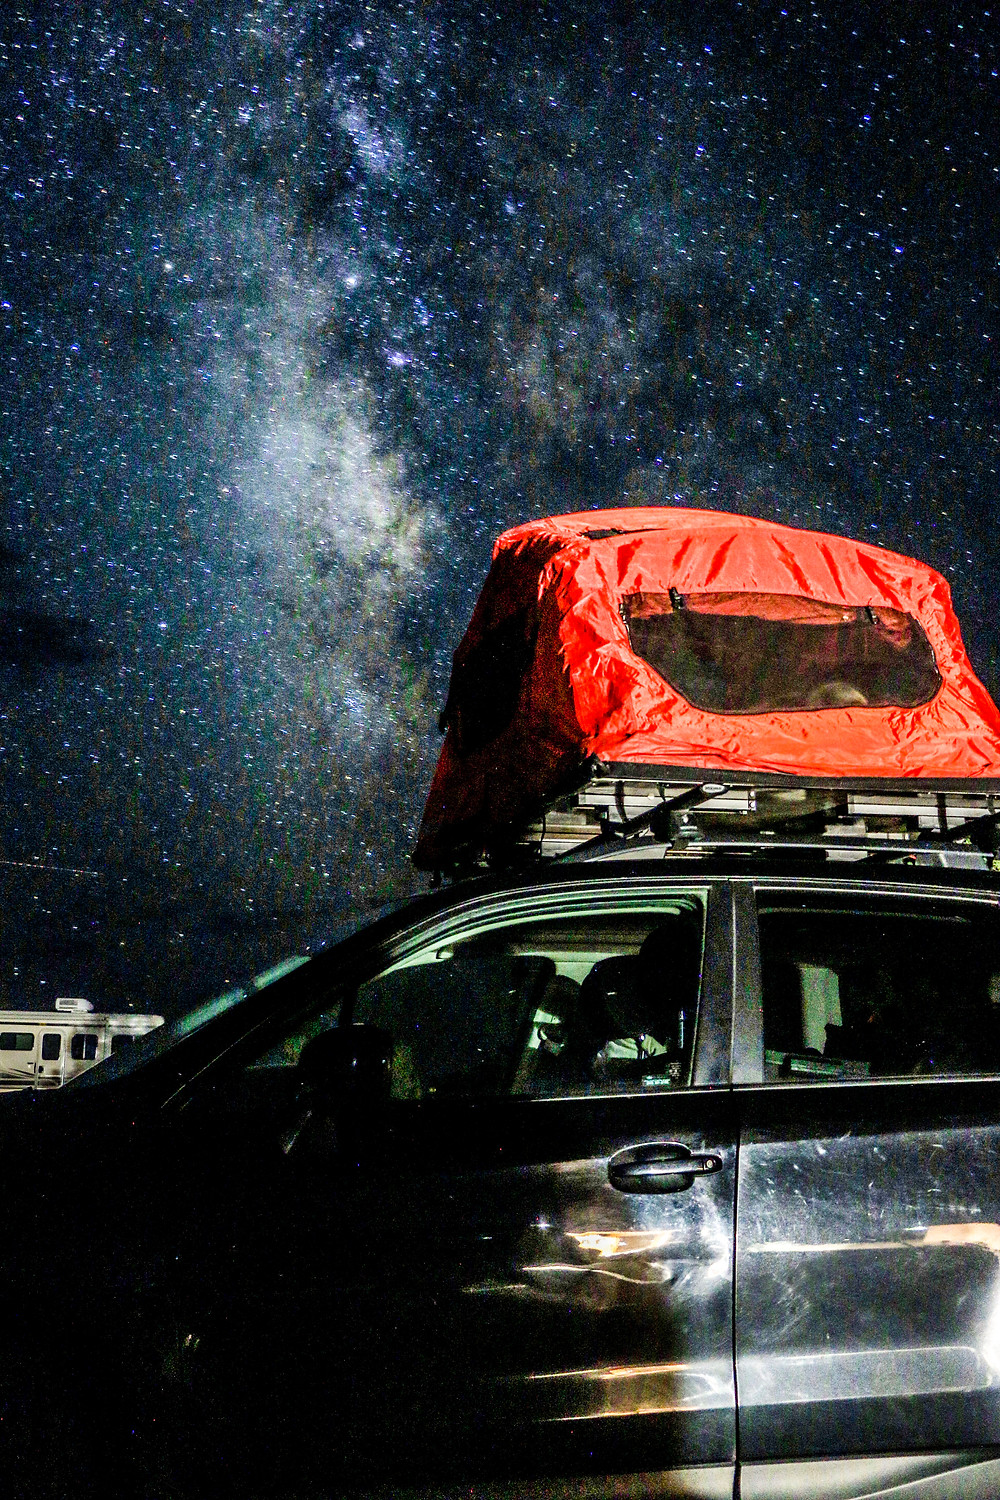 The milky way over a tent